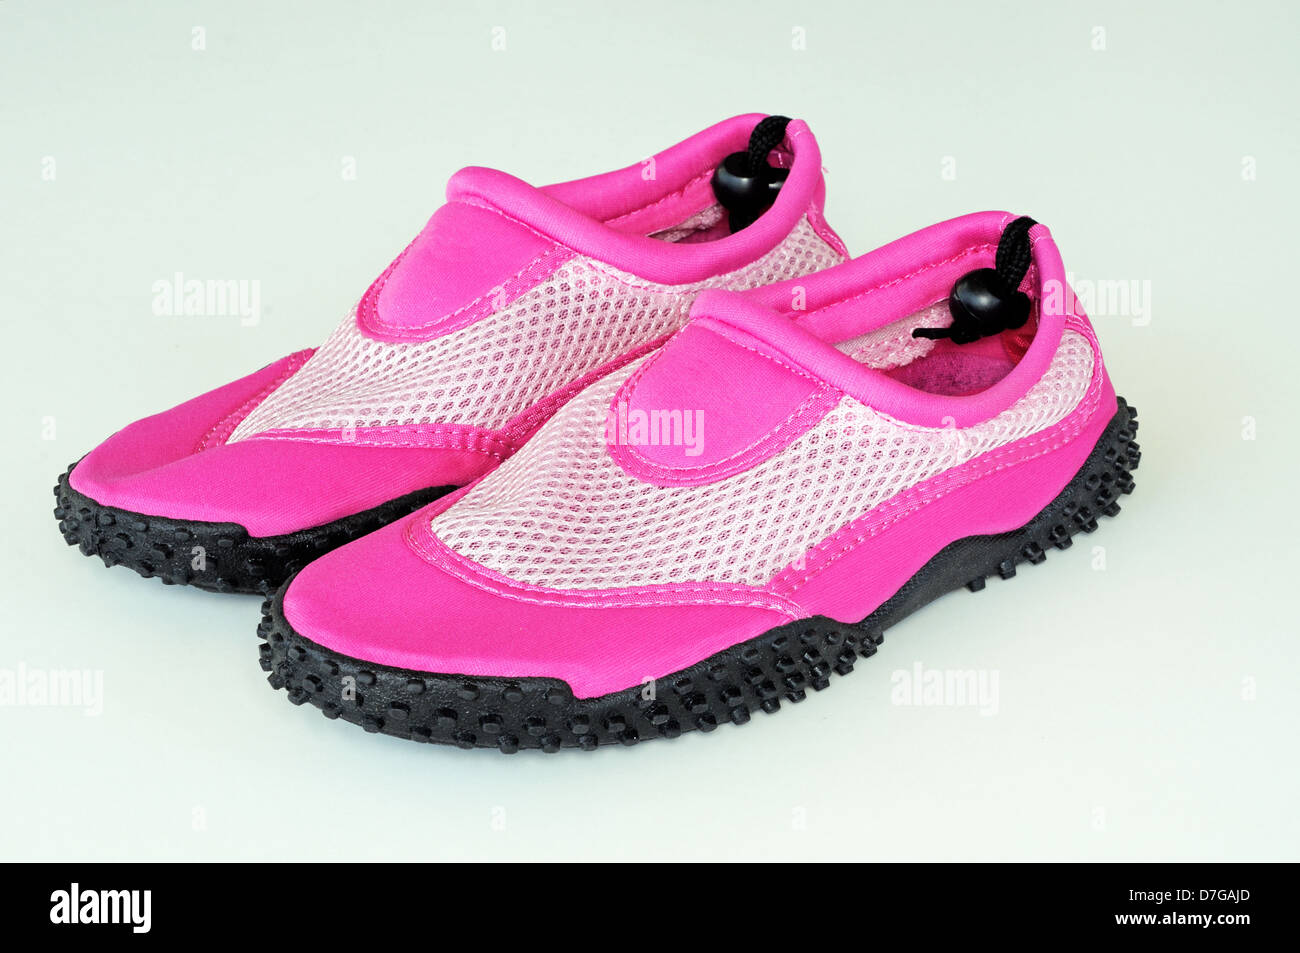 Ladies pink beach shoes against a plain background. - Stock Image